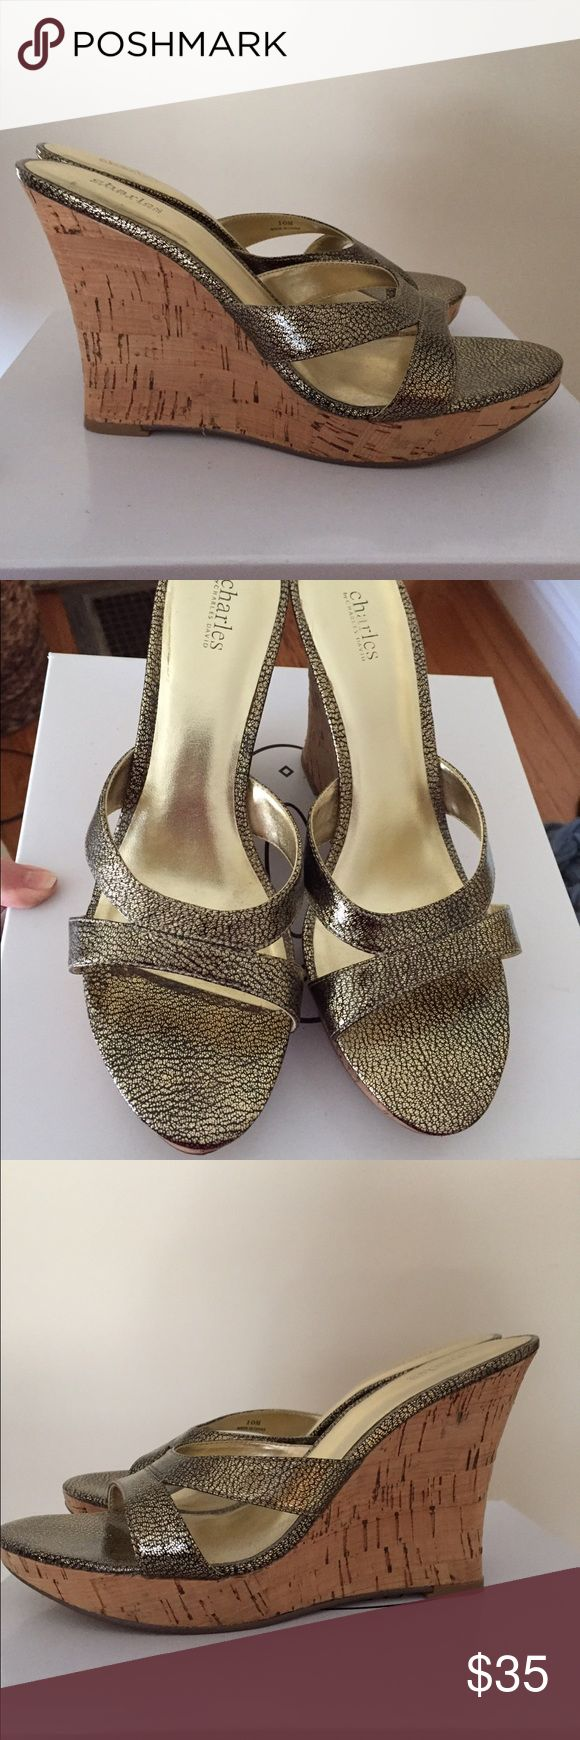 Charles by Charles David These cute wedges are from Charles David.  They are new without tags. Charles David Shoes Wedges